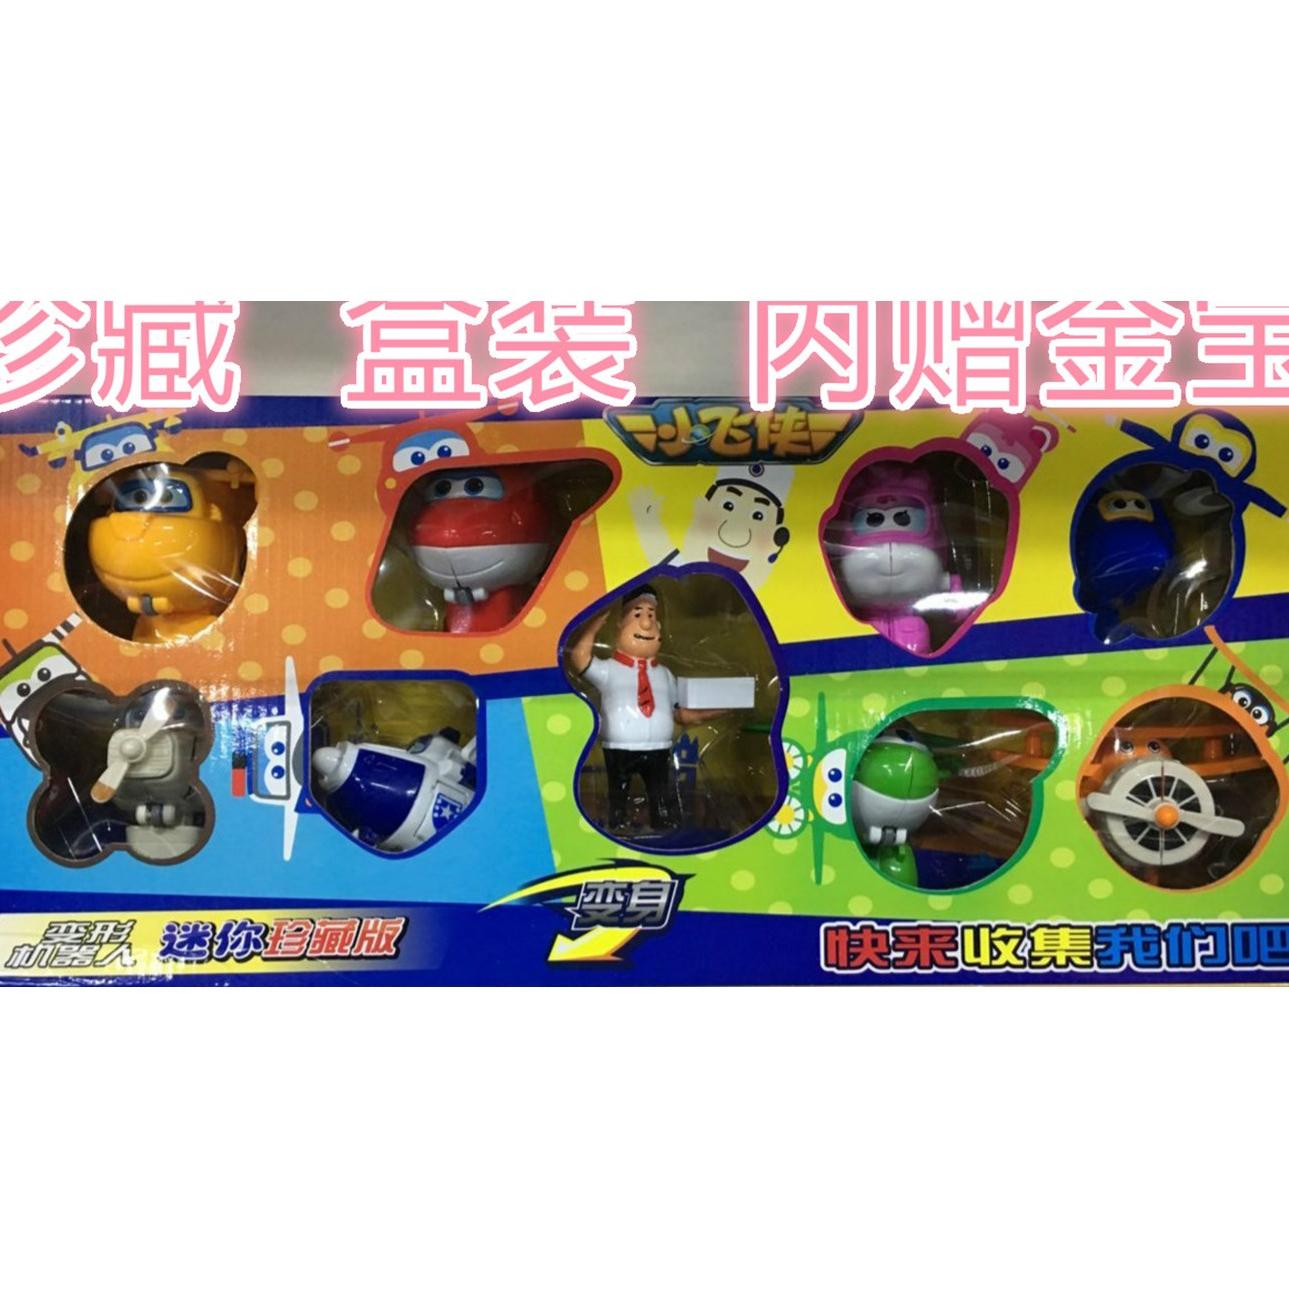 The new super super Peter Pan cartoon toys deformation deformation robot suit full set of 8 only puzzle play